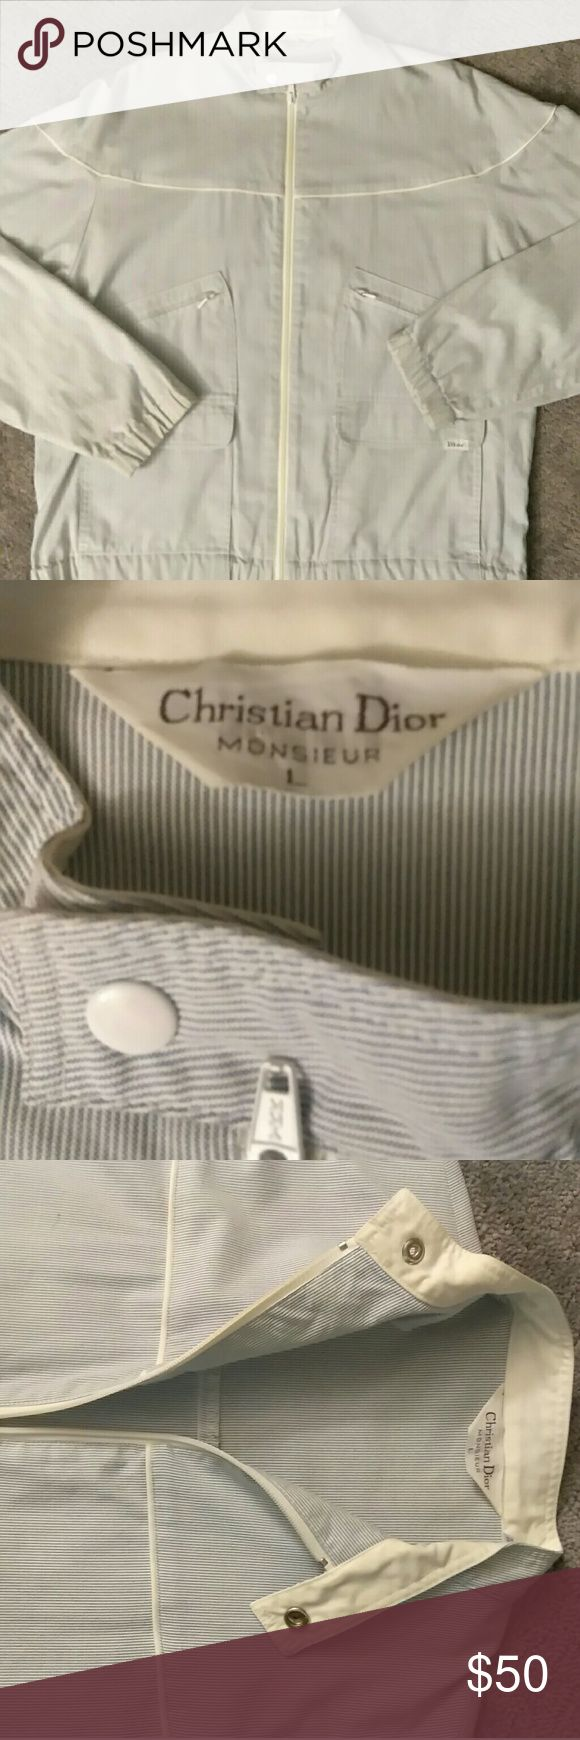 Vintage Christian dior (monsier) Light weight fabric its  white with baby blue pinstripes .it's a  Great causal look with some class and style look amazing with jeans Dior Jackets & Coats